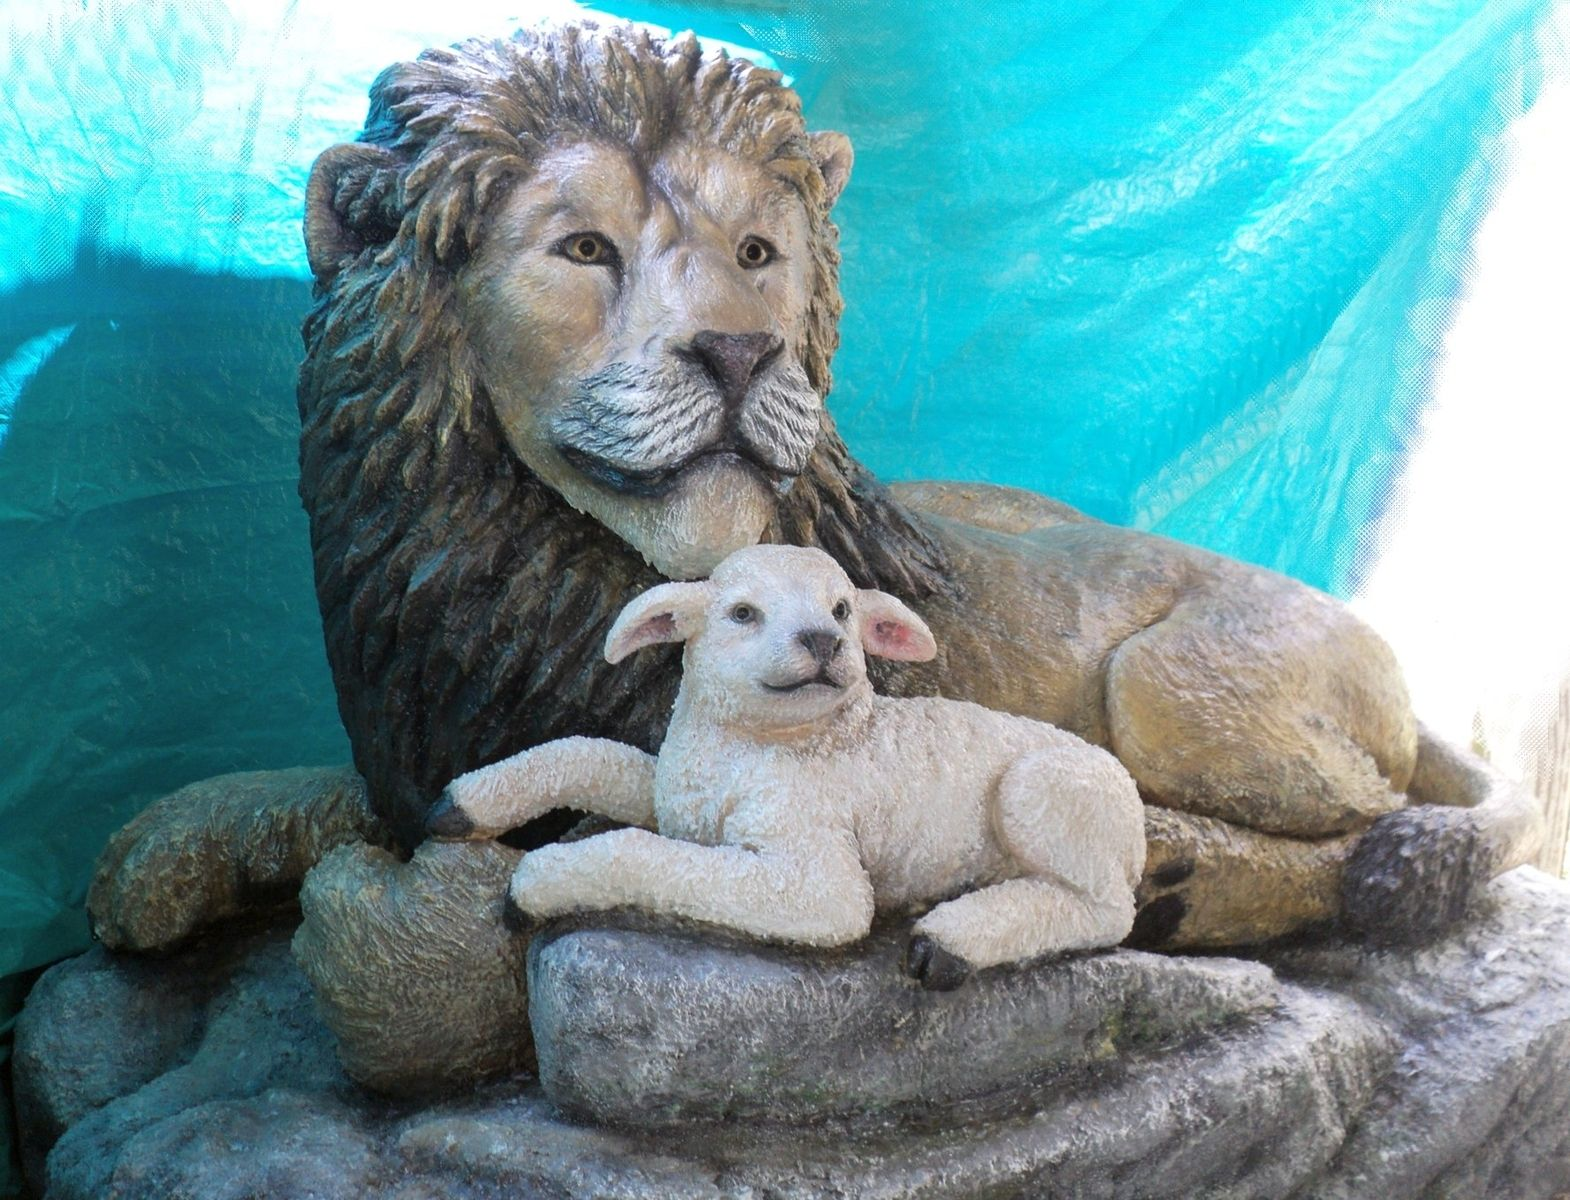 Handmade The Lion And The Lamb: Full Life Size Statue 4x5x8